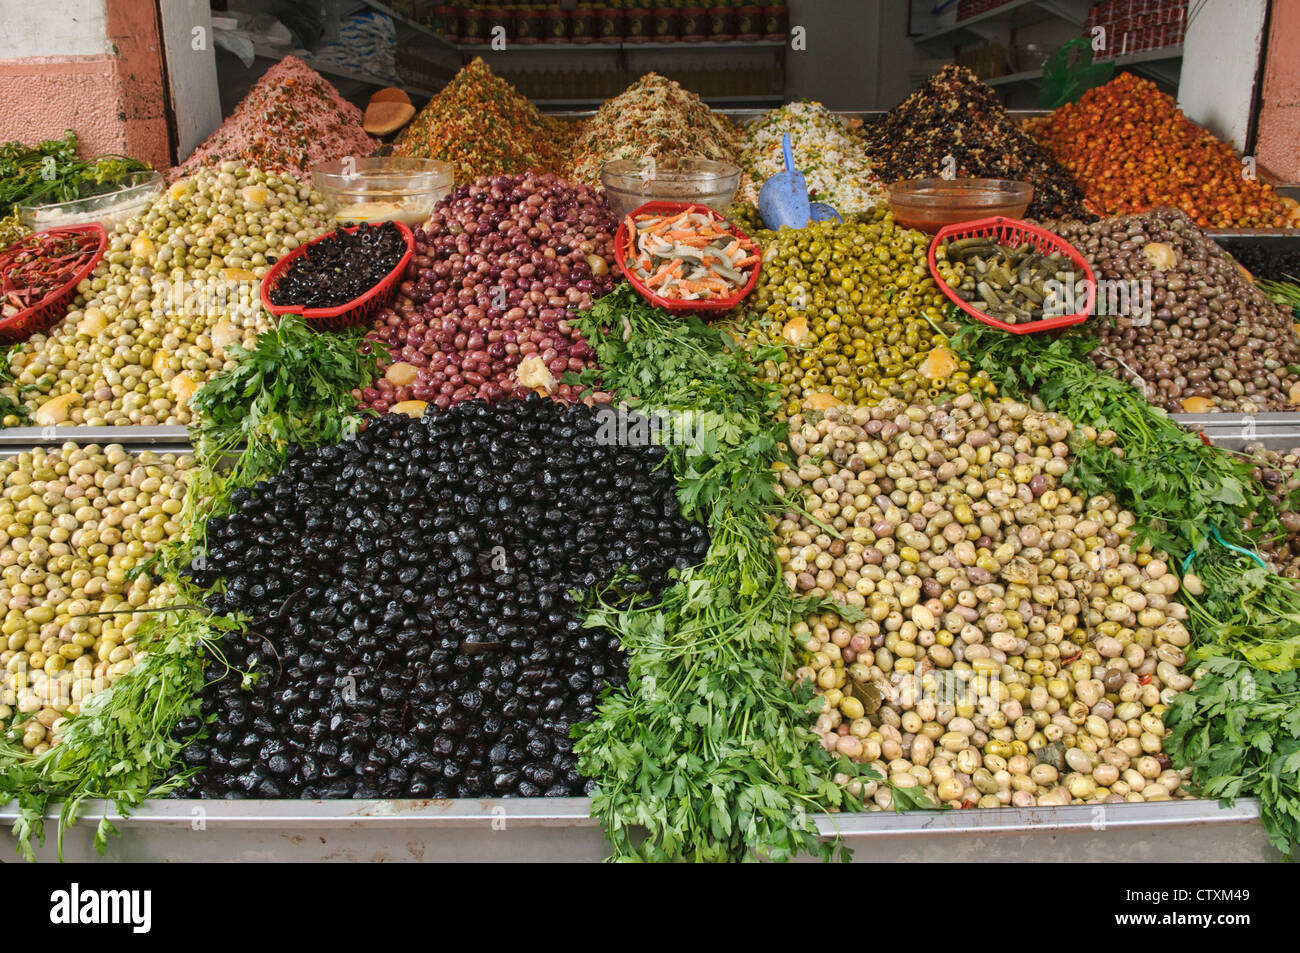 olives for sale at the Marche Central in Casablanca, Morocco - Stock Image